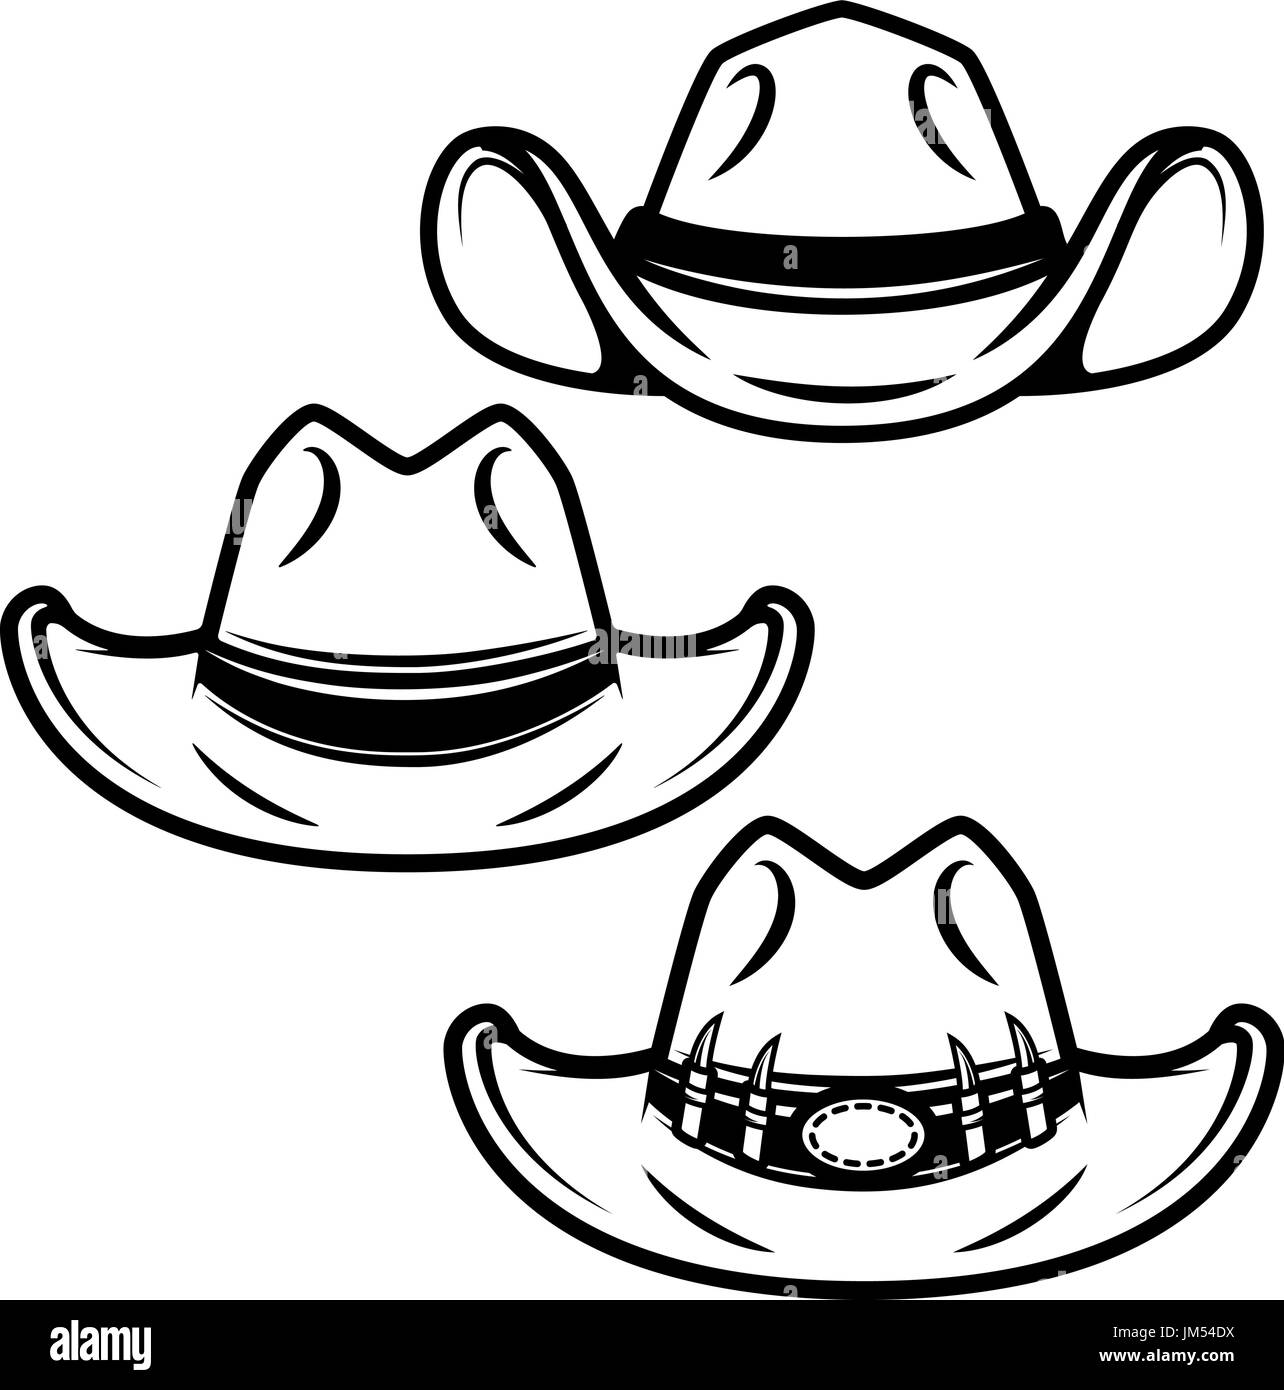 Set of cowboy hats isolated on white background. Design element for logo, label, emblem, sign. Vector illustration - Stock Image